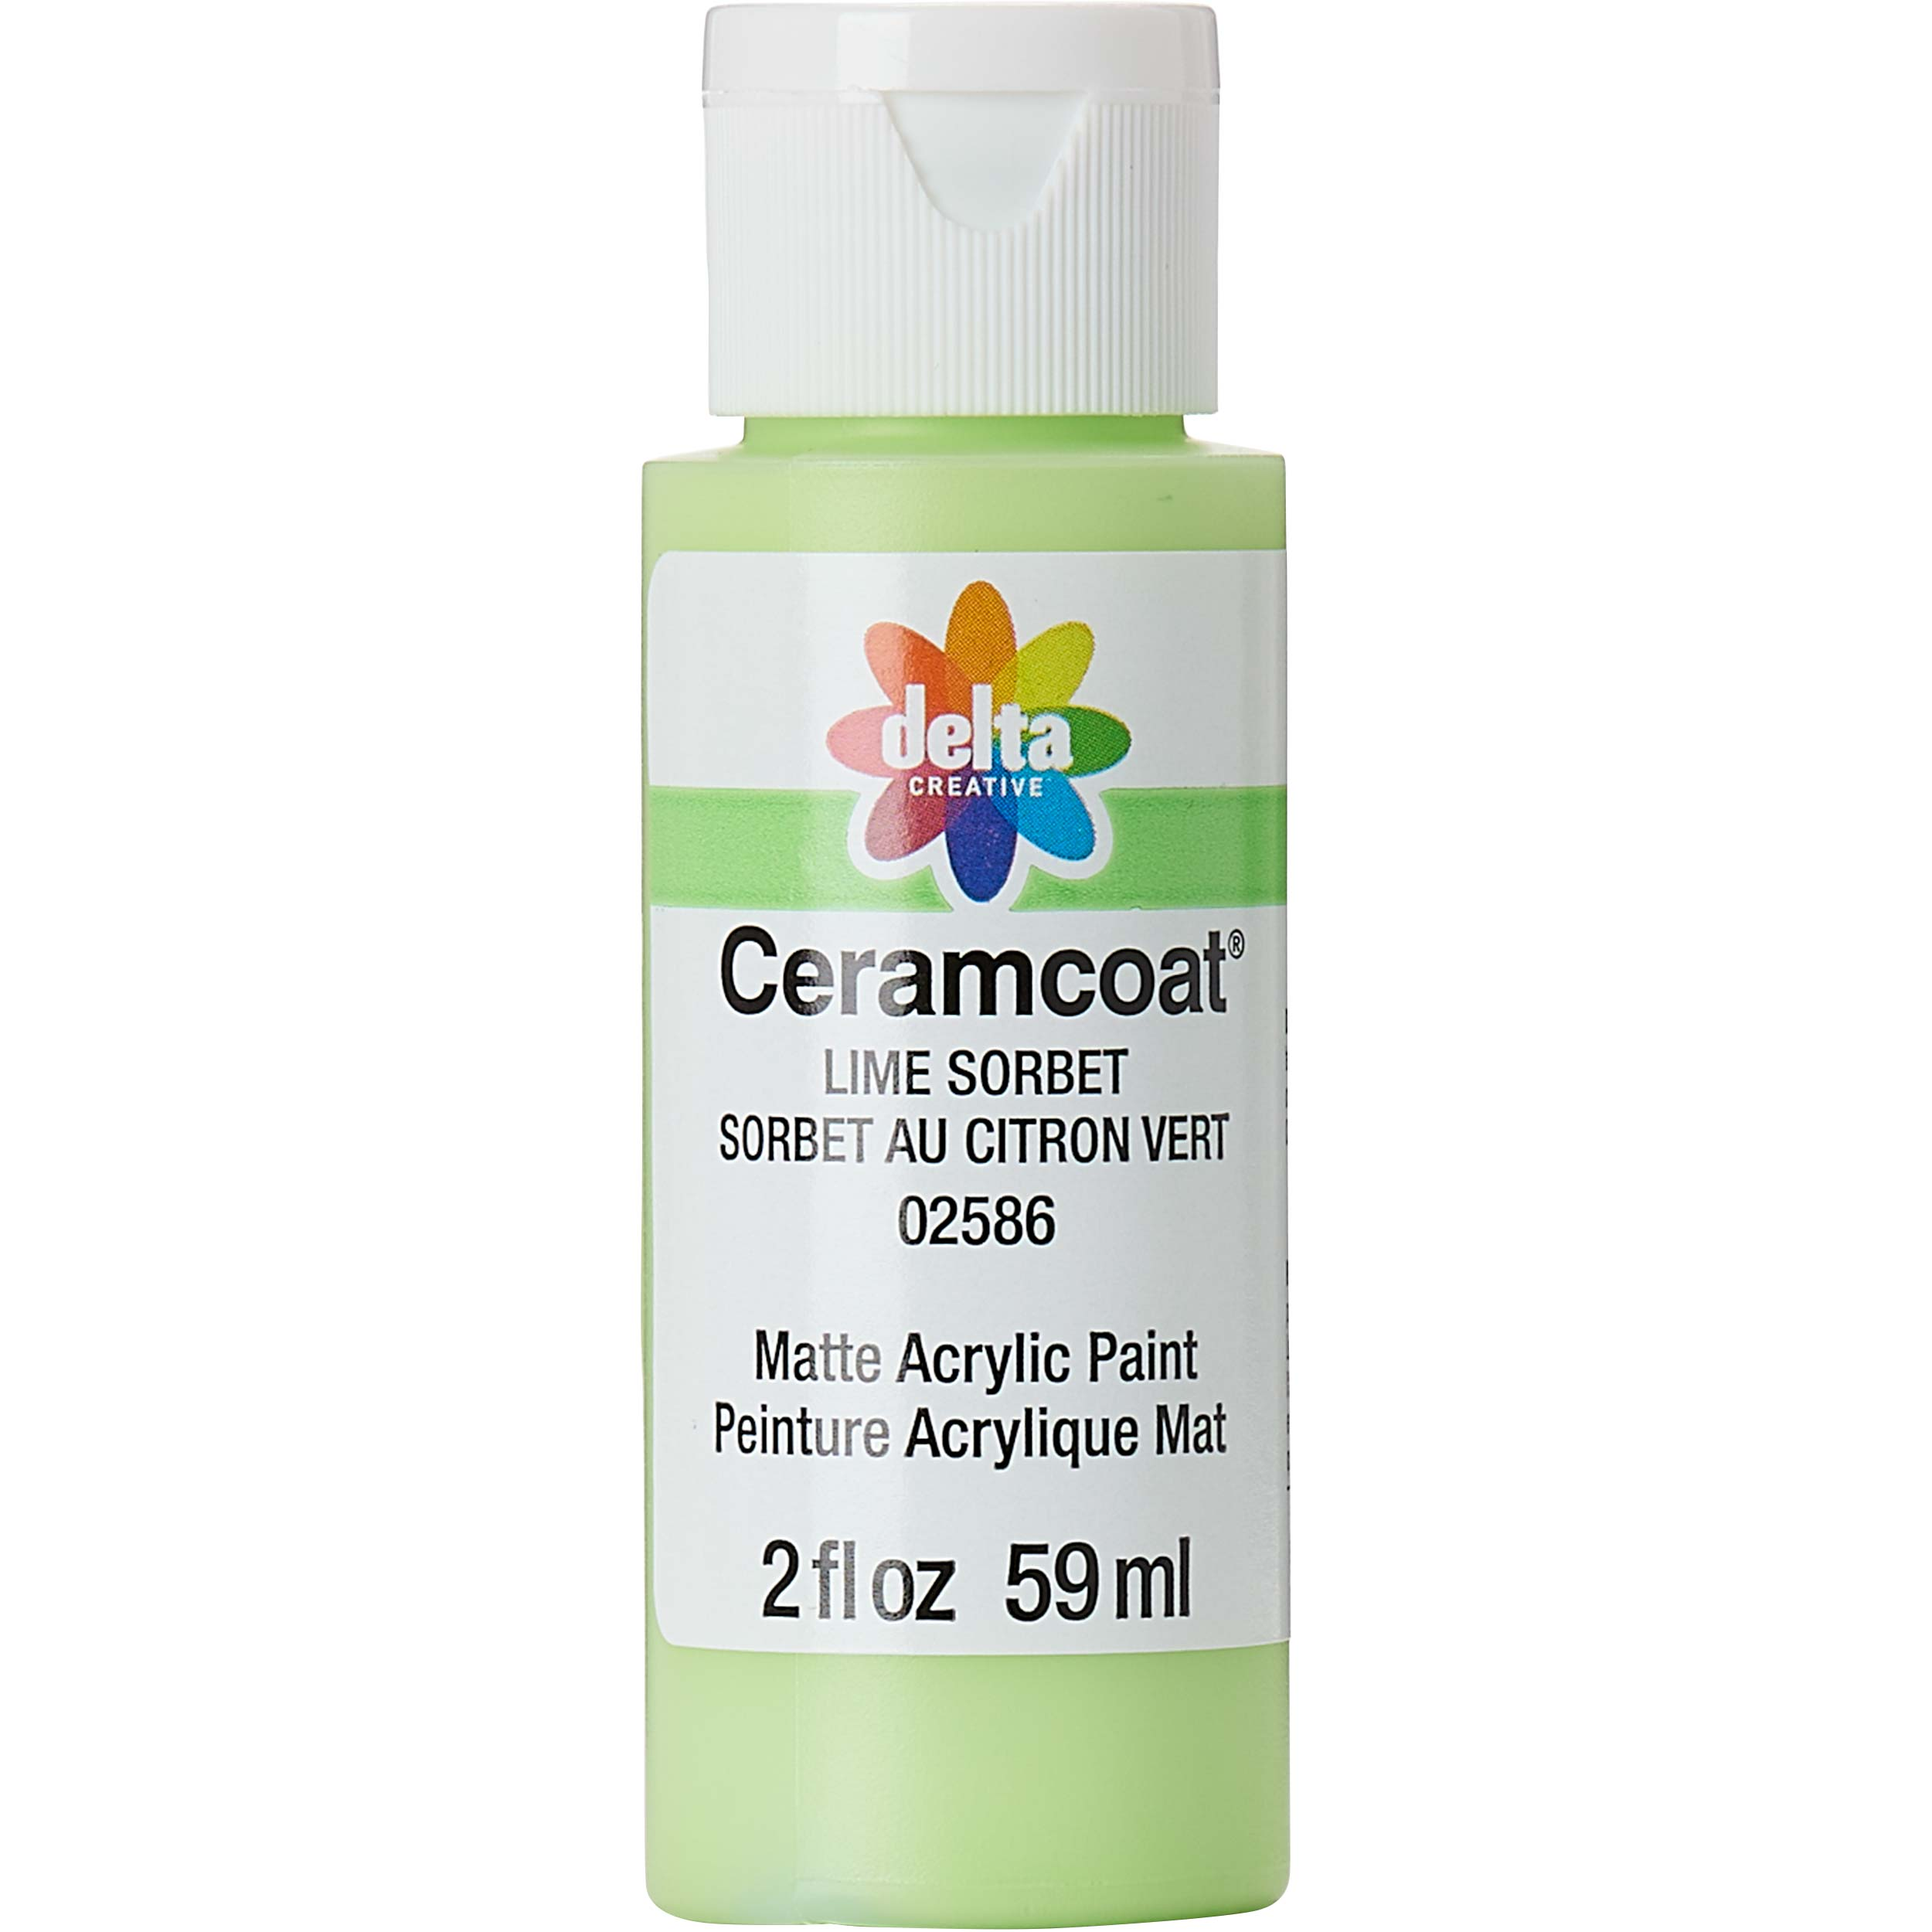 Delta Ceramcoat ® Acrylic Paint - Lime Sorbet, 2 oz. - 025860202W